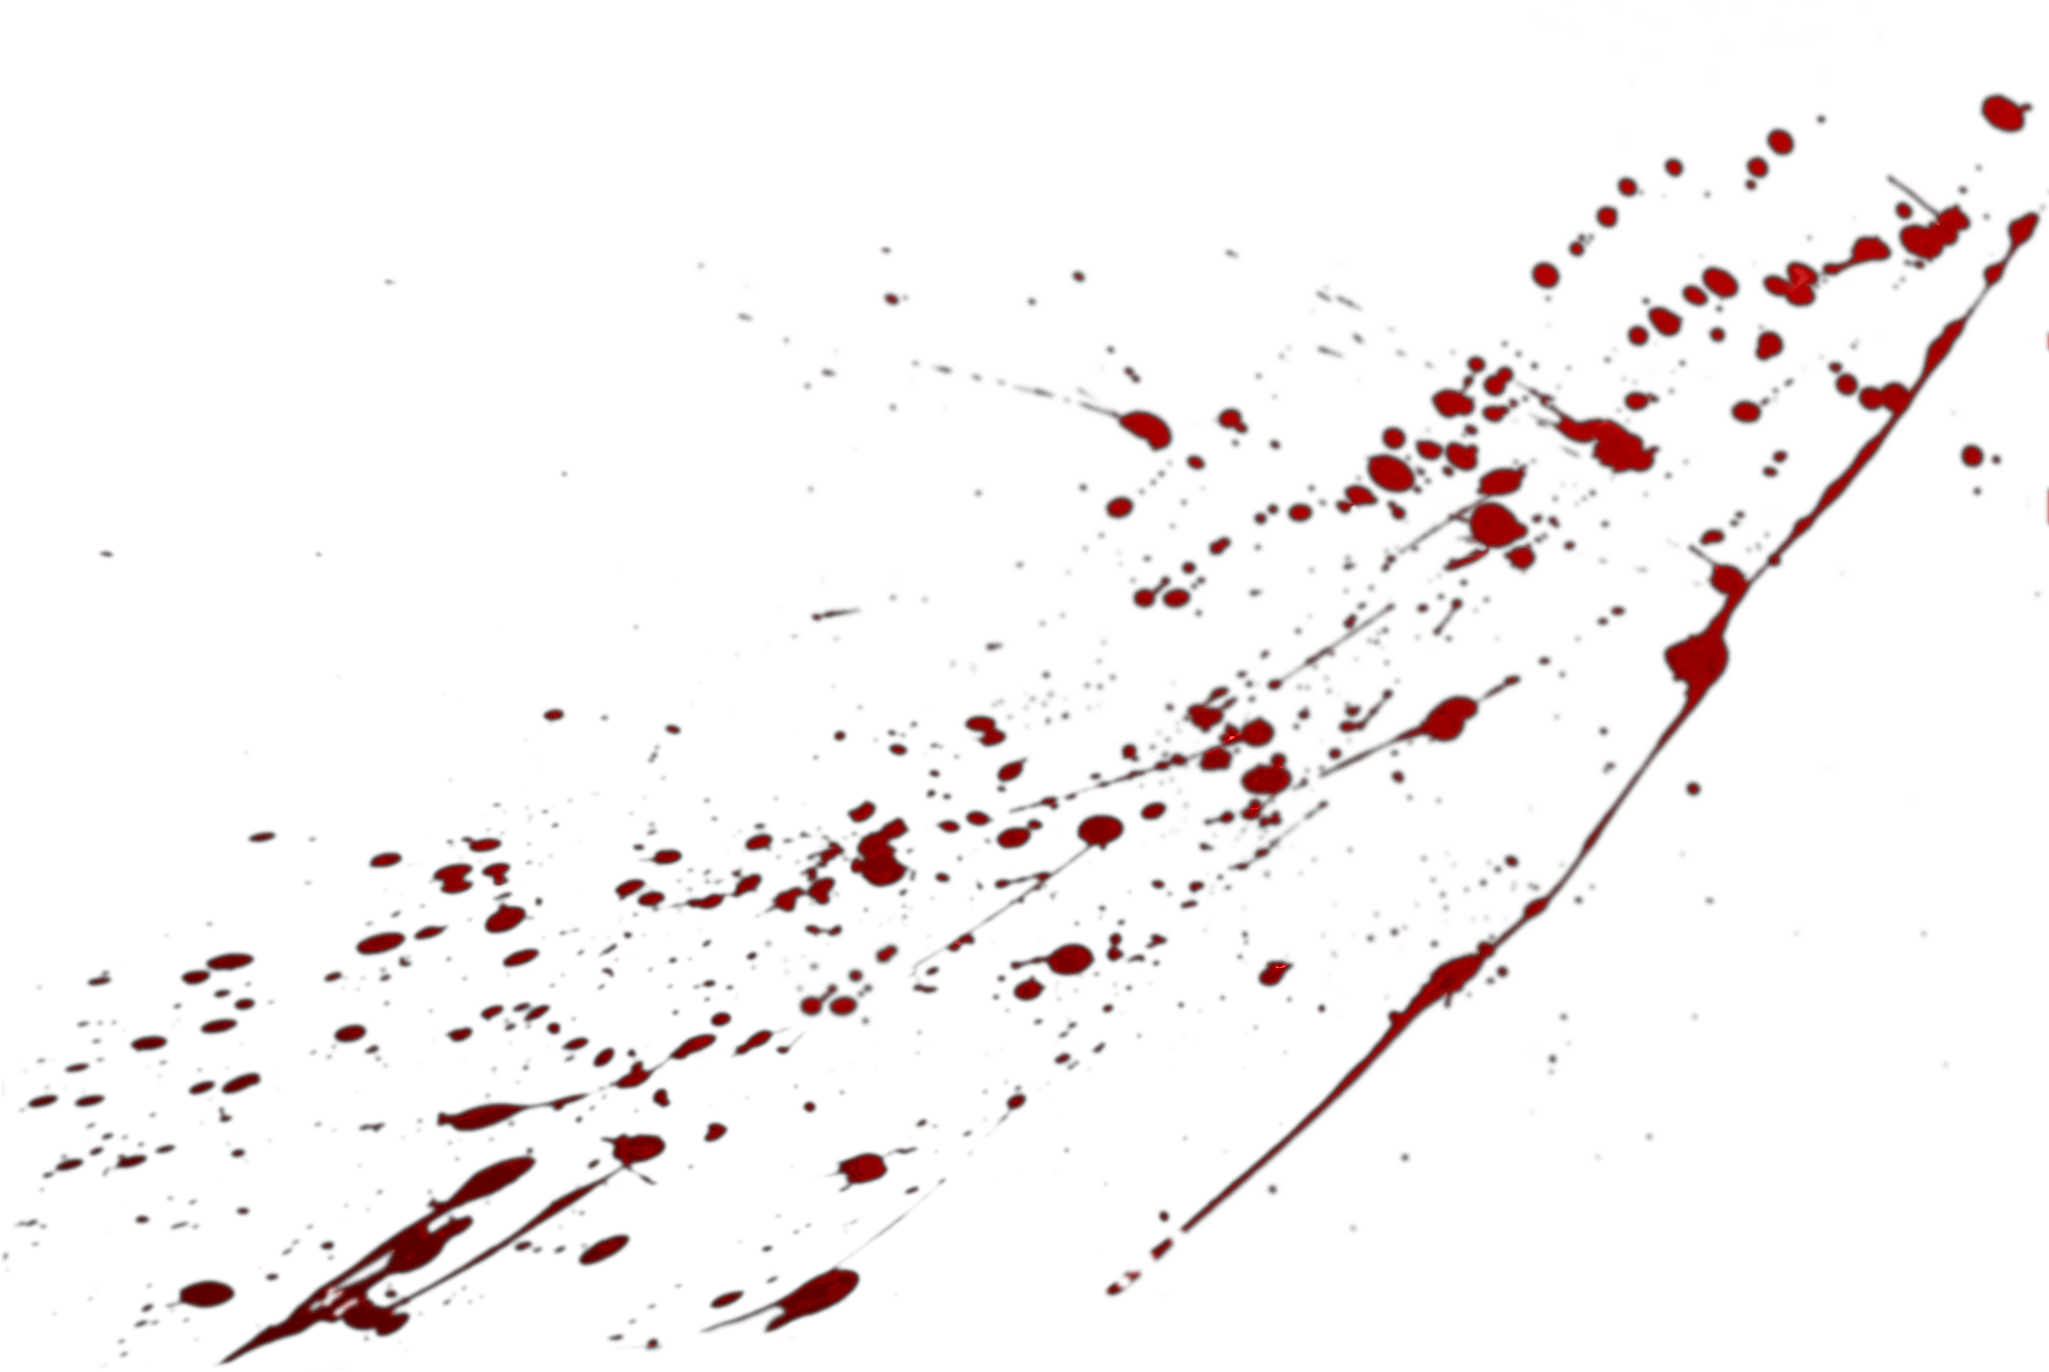 Blood Spatter Png - blood spatter png - AbeonCliparts   Cliparts & Vectors